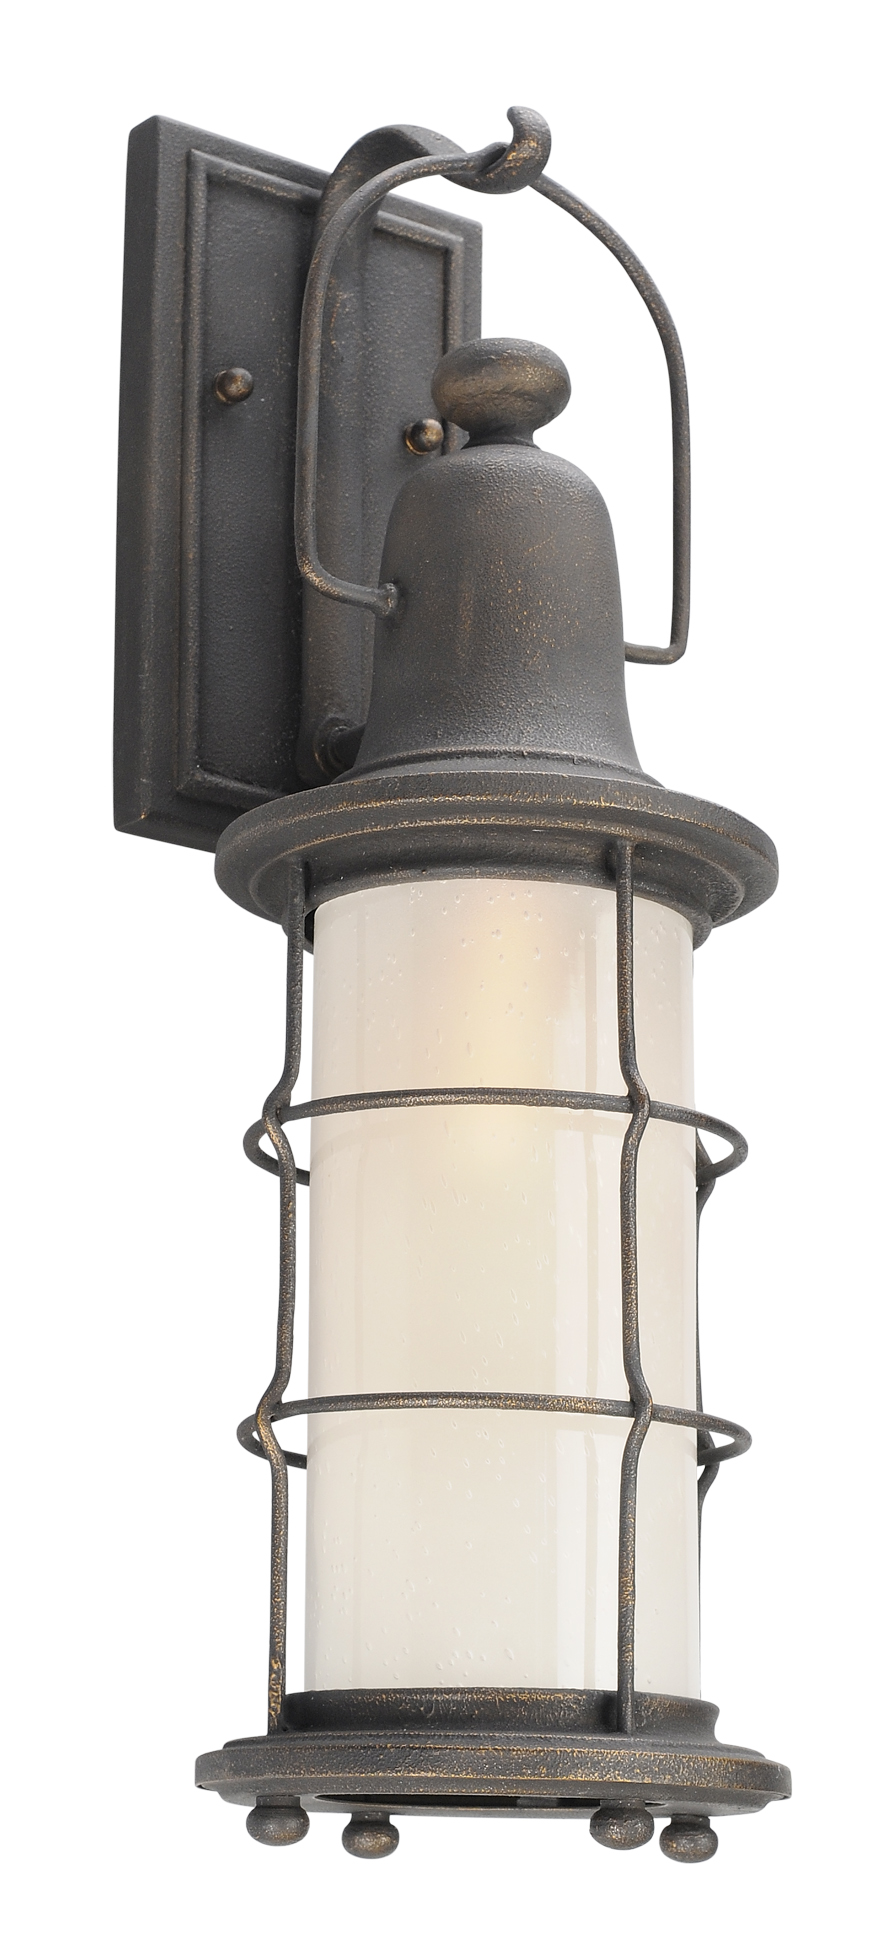 Troy B4441 Maritime Hand Worked Iron Outdoor Lighting Sconce - TRO-B4441